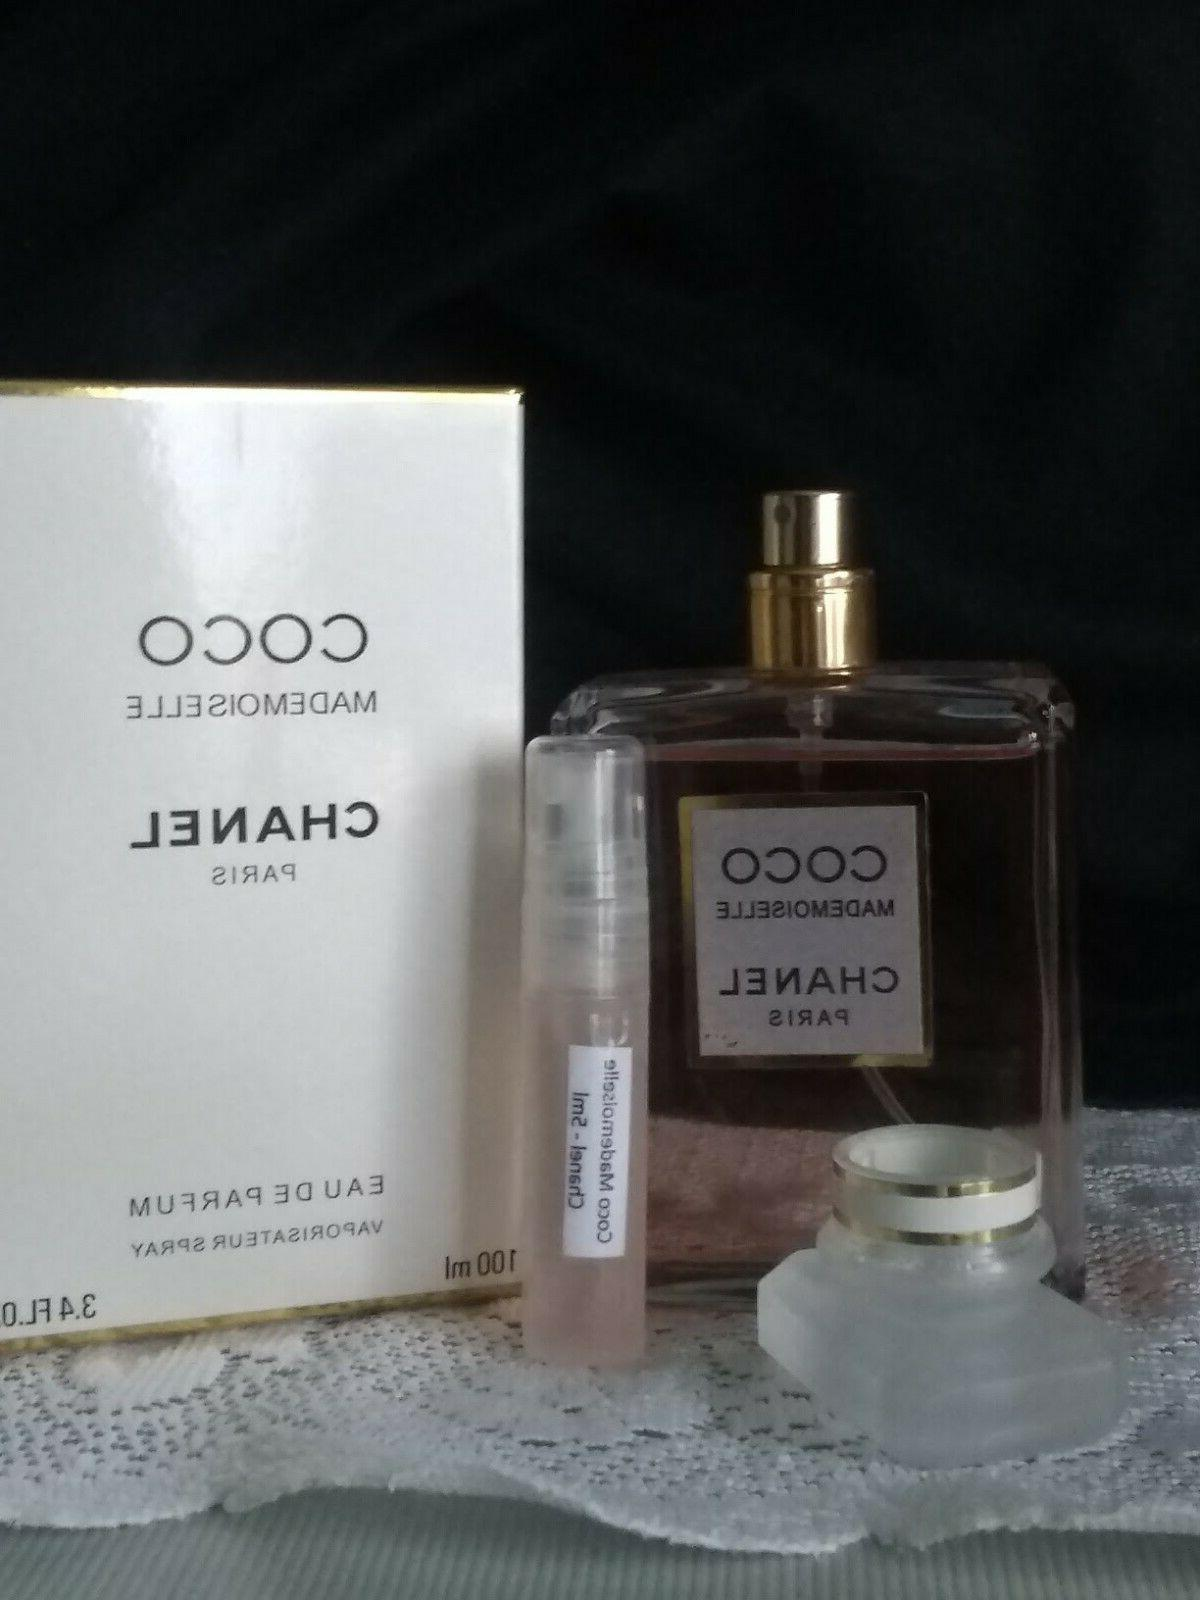 Coco by Chanel, Sample Decant, Purse Travel Spray!